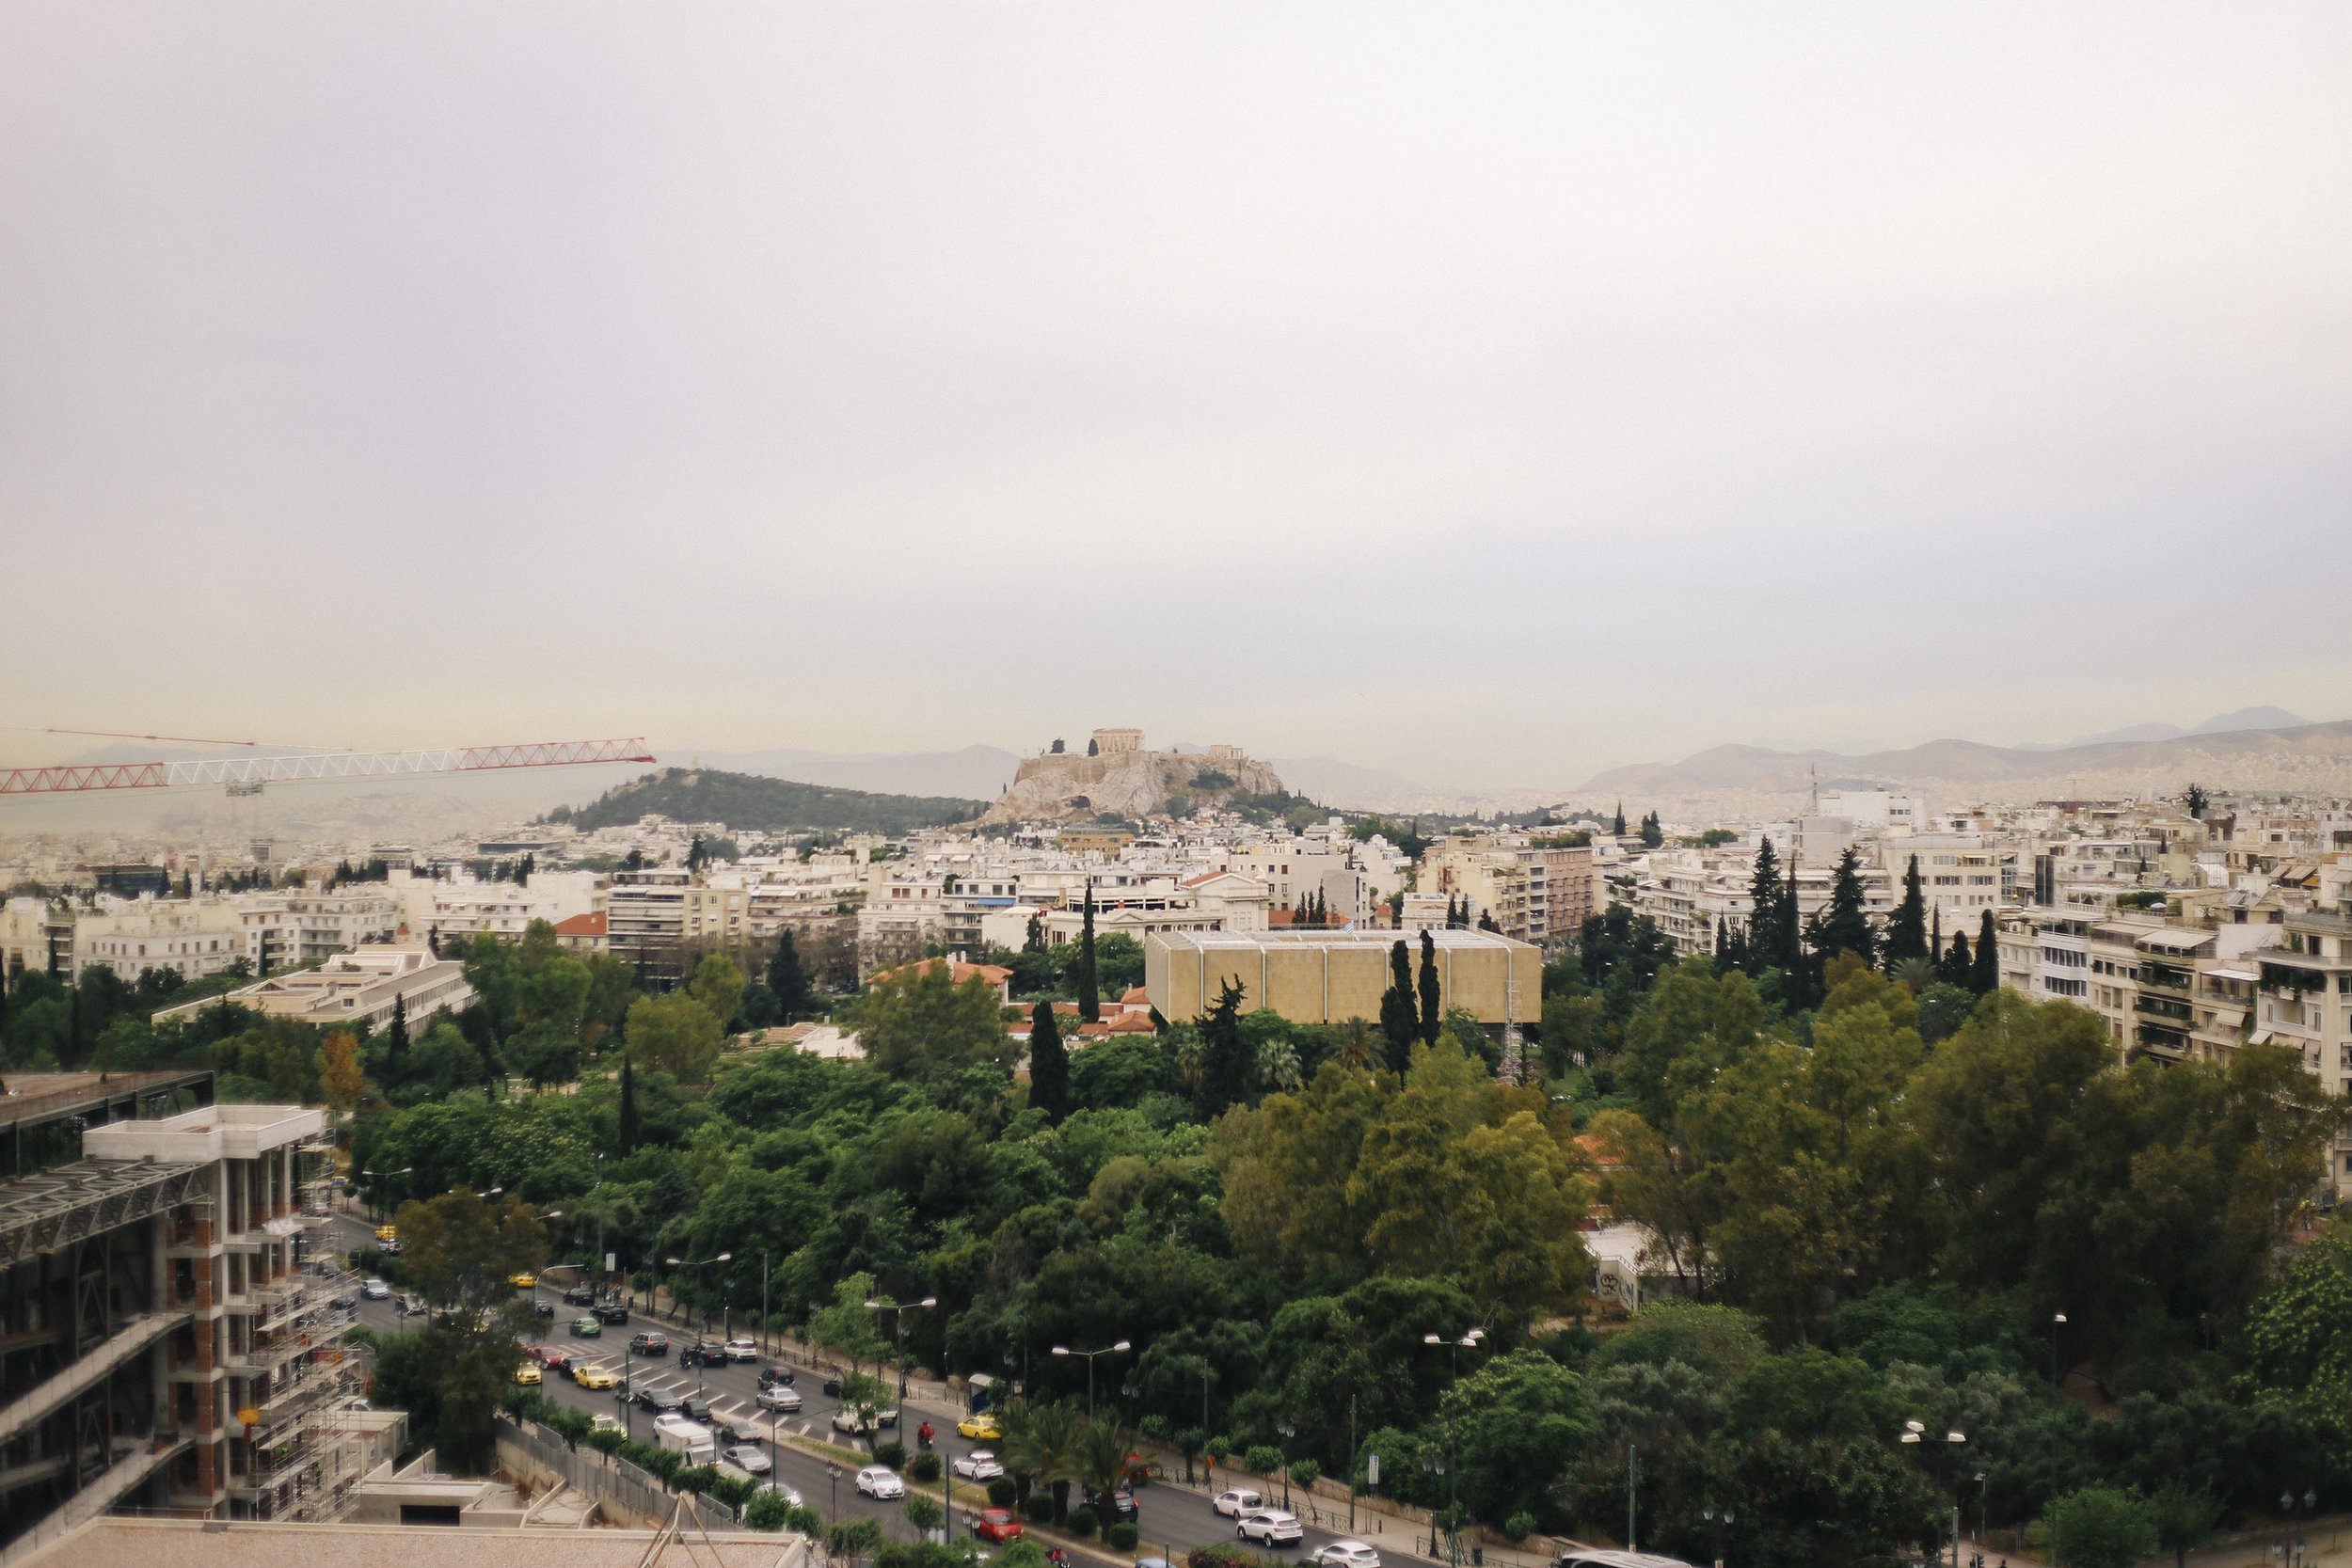 Athens (view from our hotel)